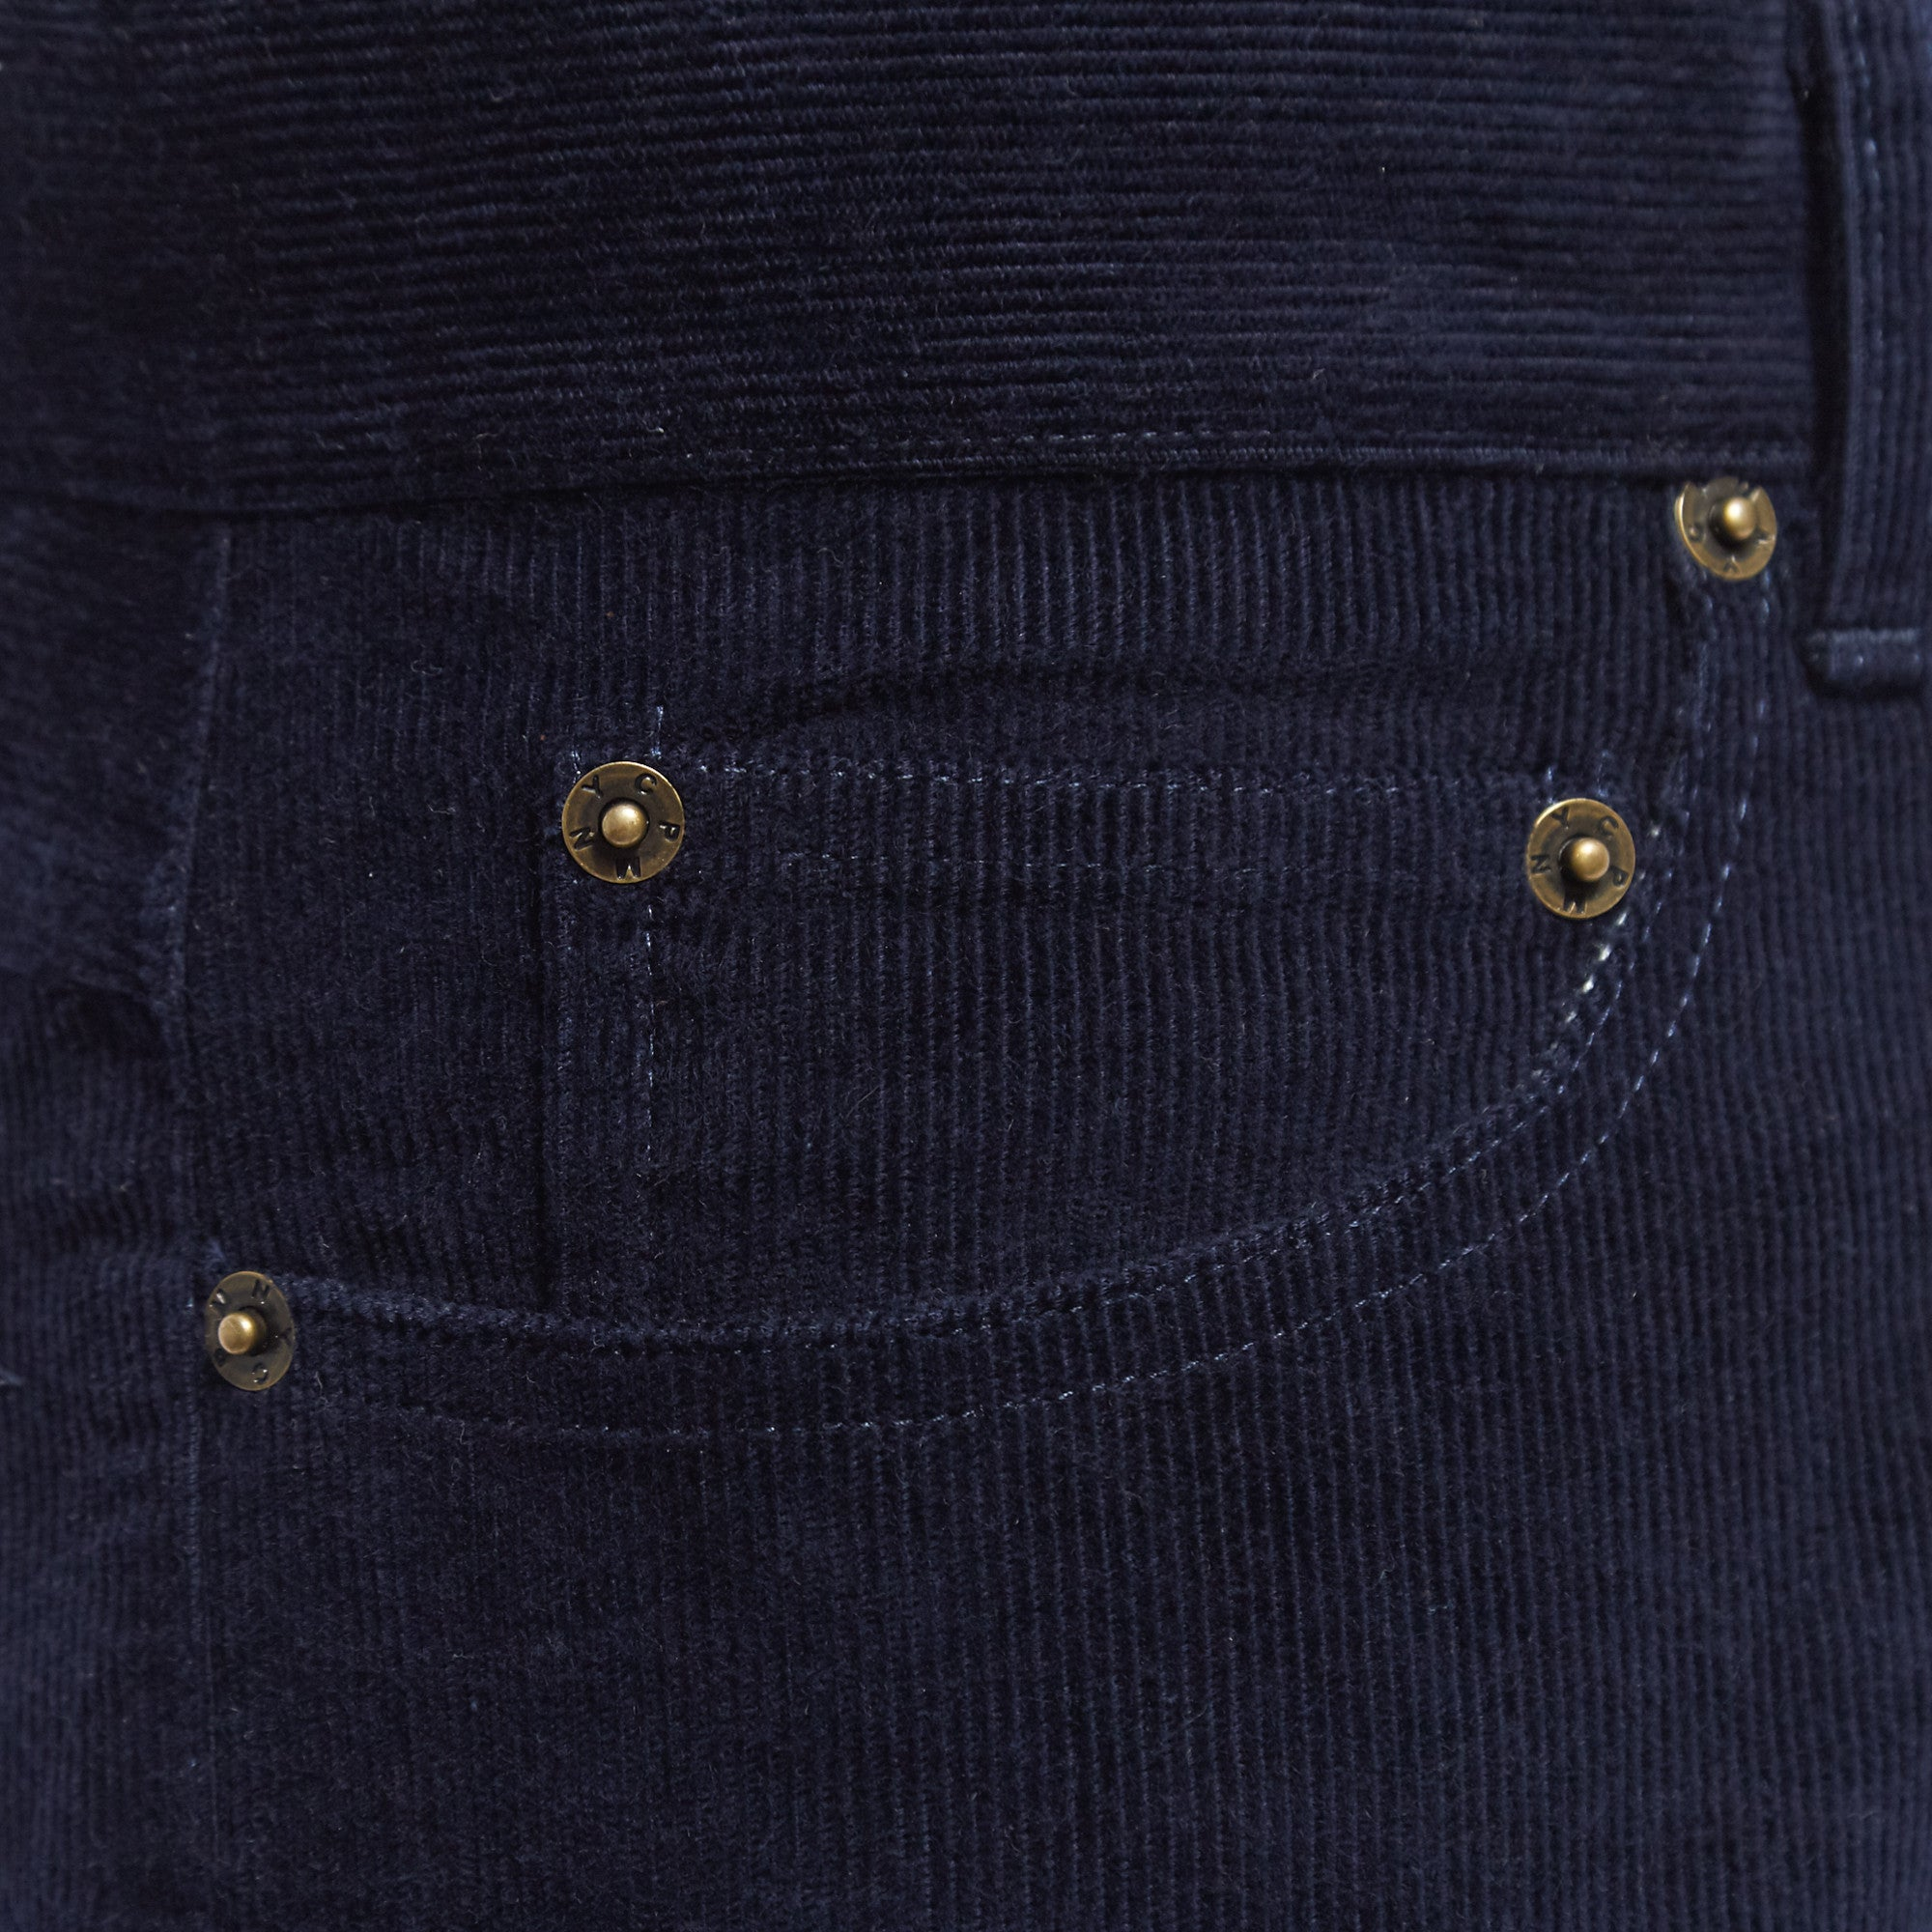 Kittredge Cords - Navy